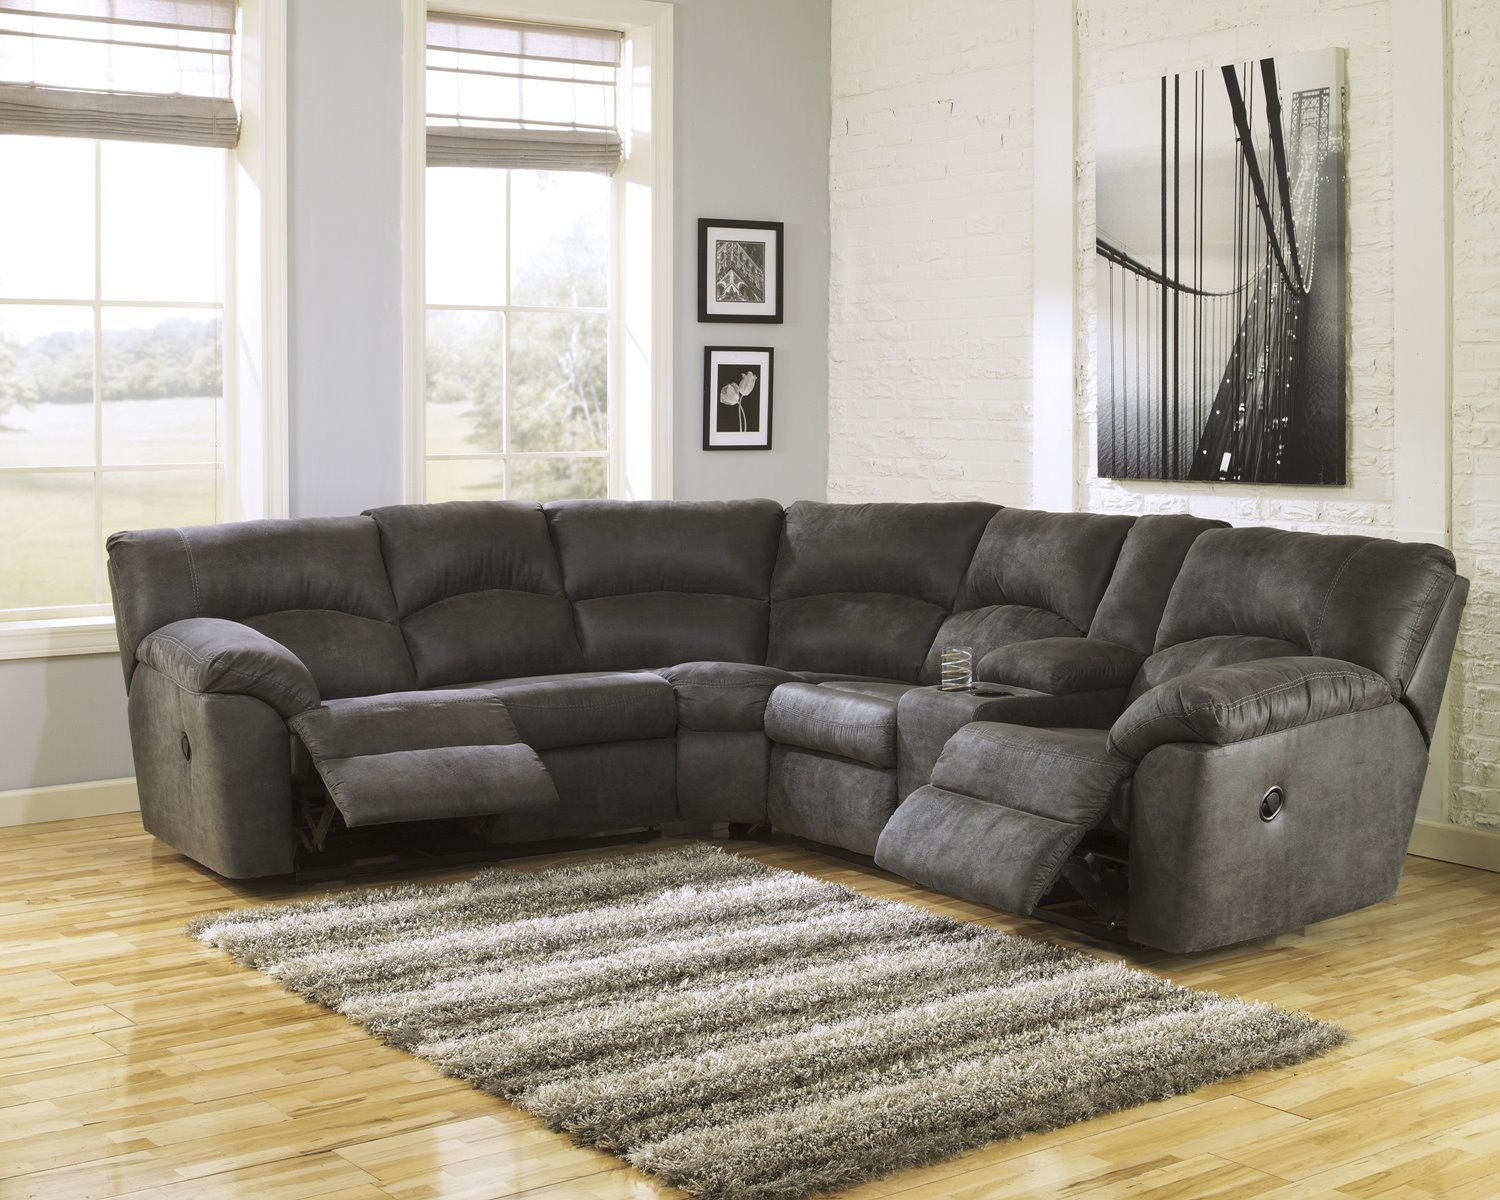 Tambo Reclining Sectional In Pewter